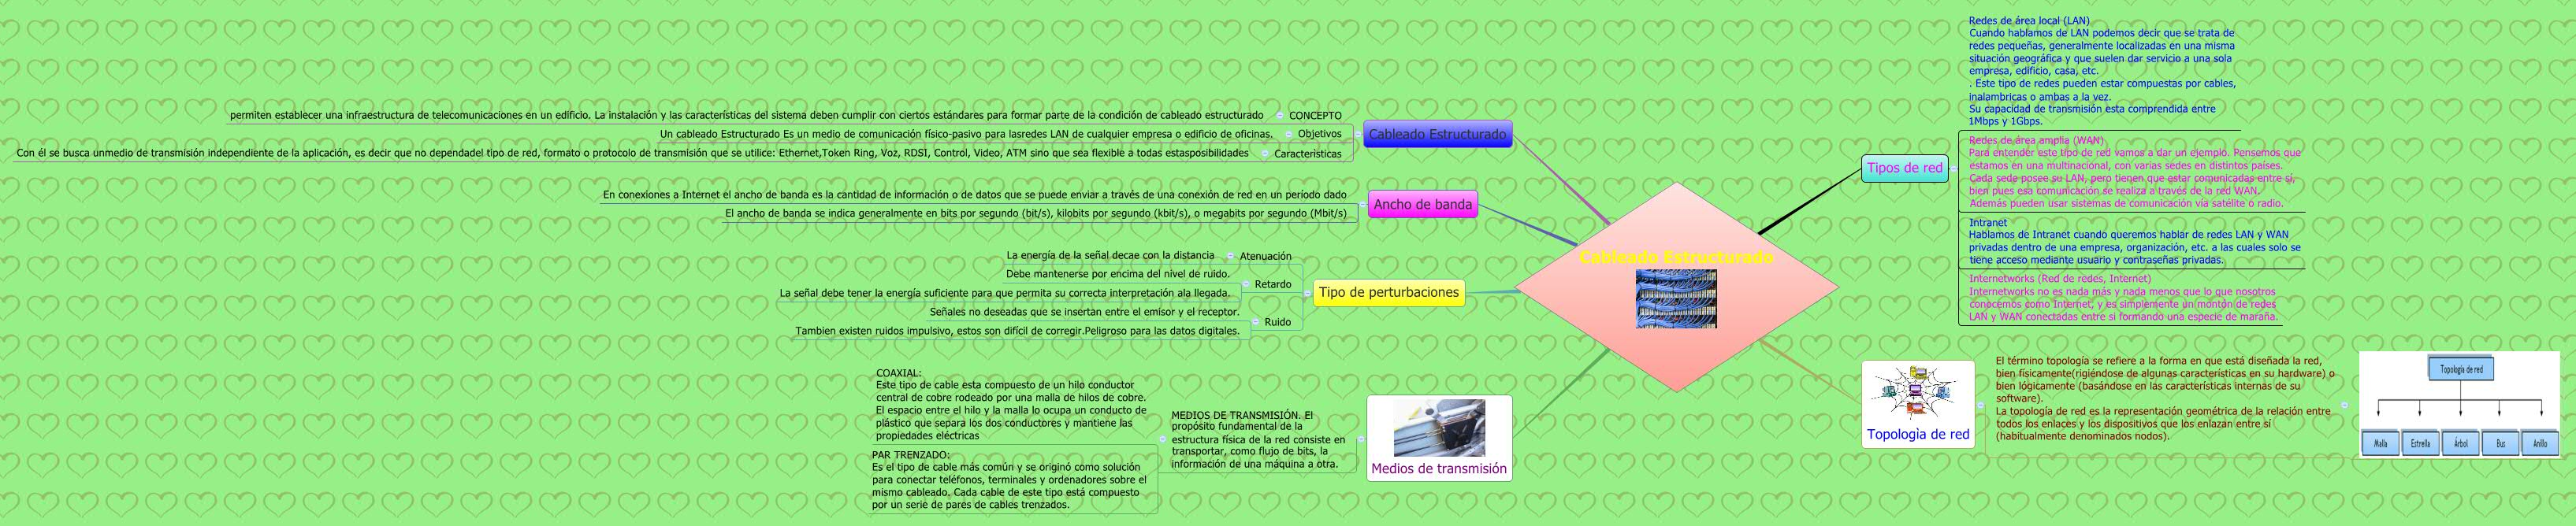 Xmind Share Xmind Mind Mapping Software